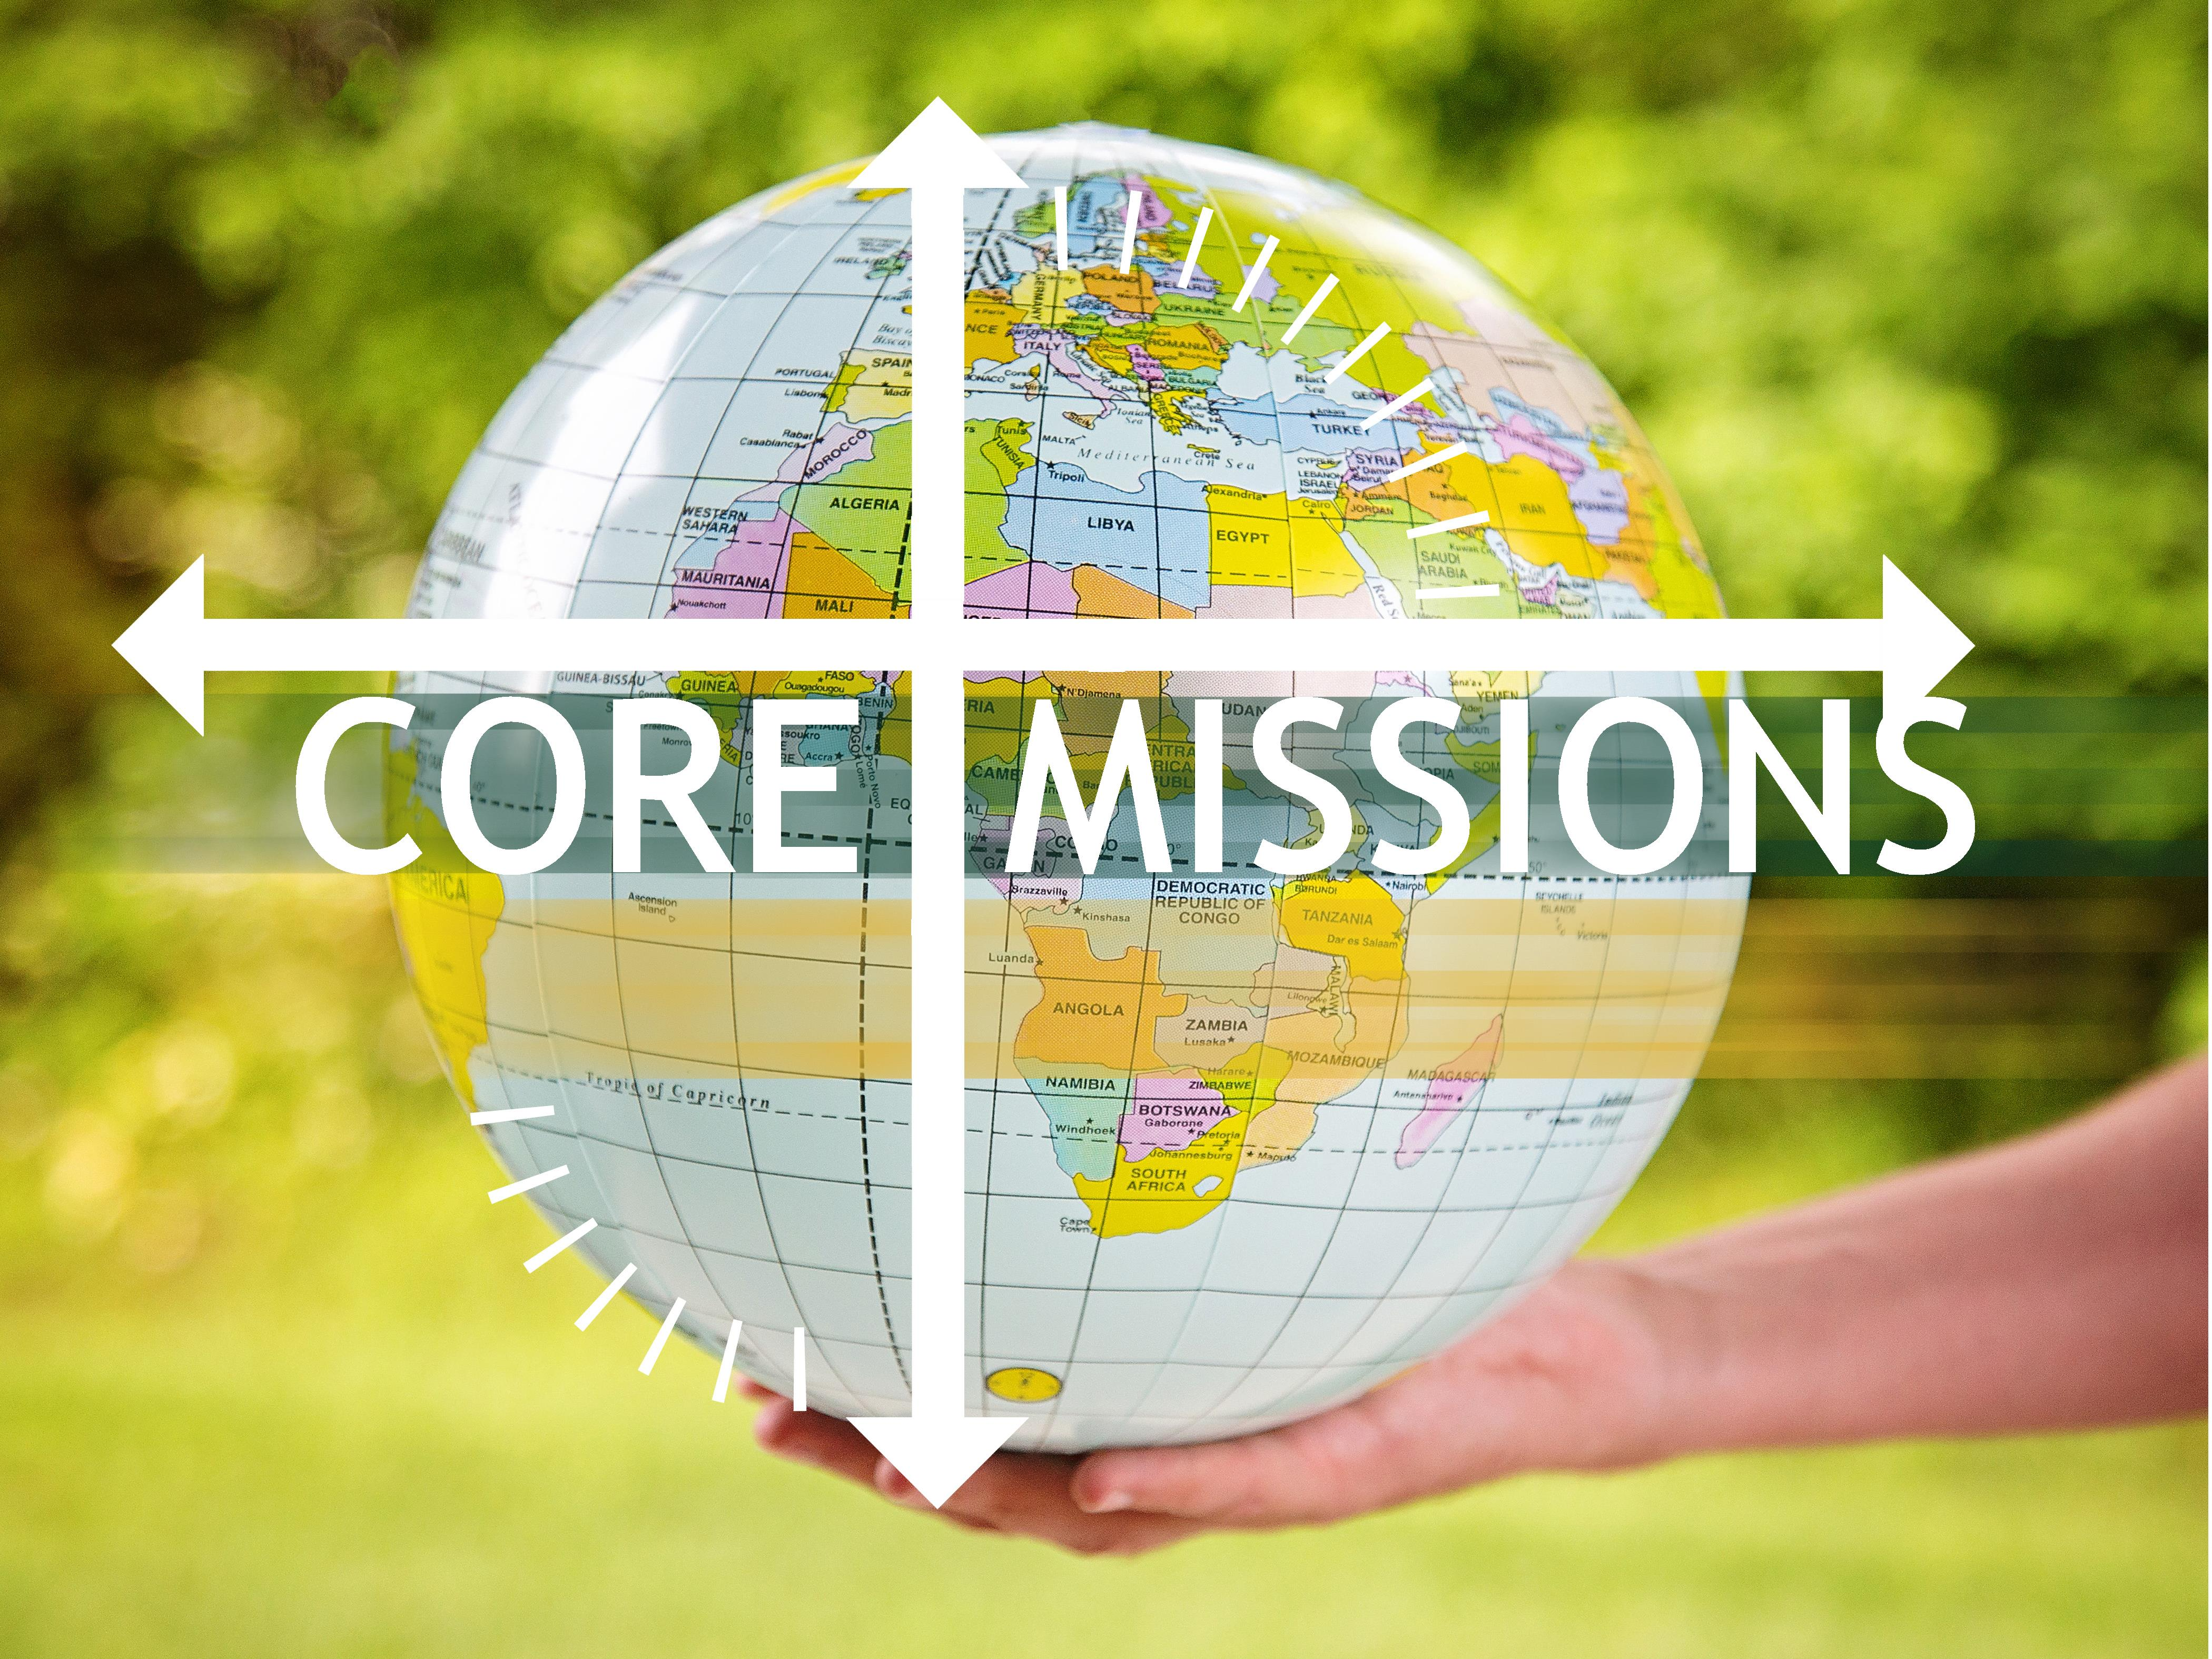 core missions